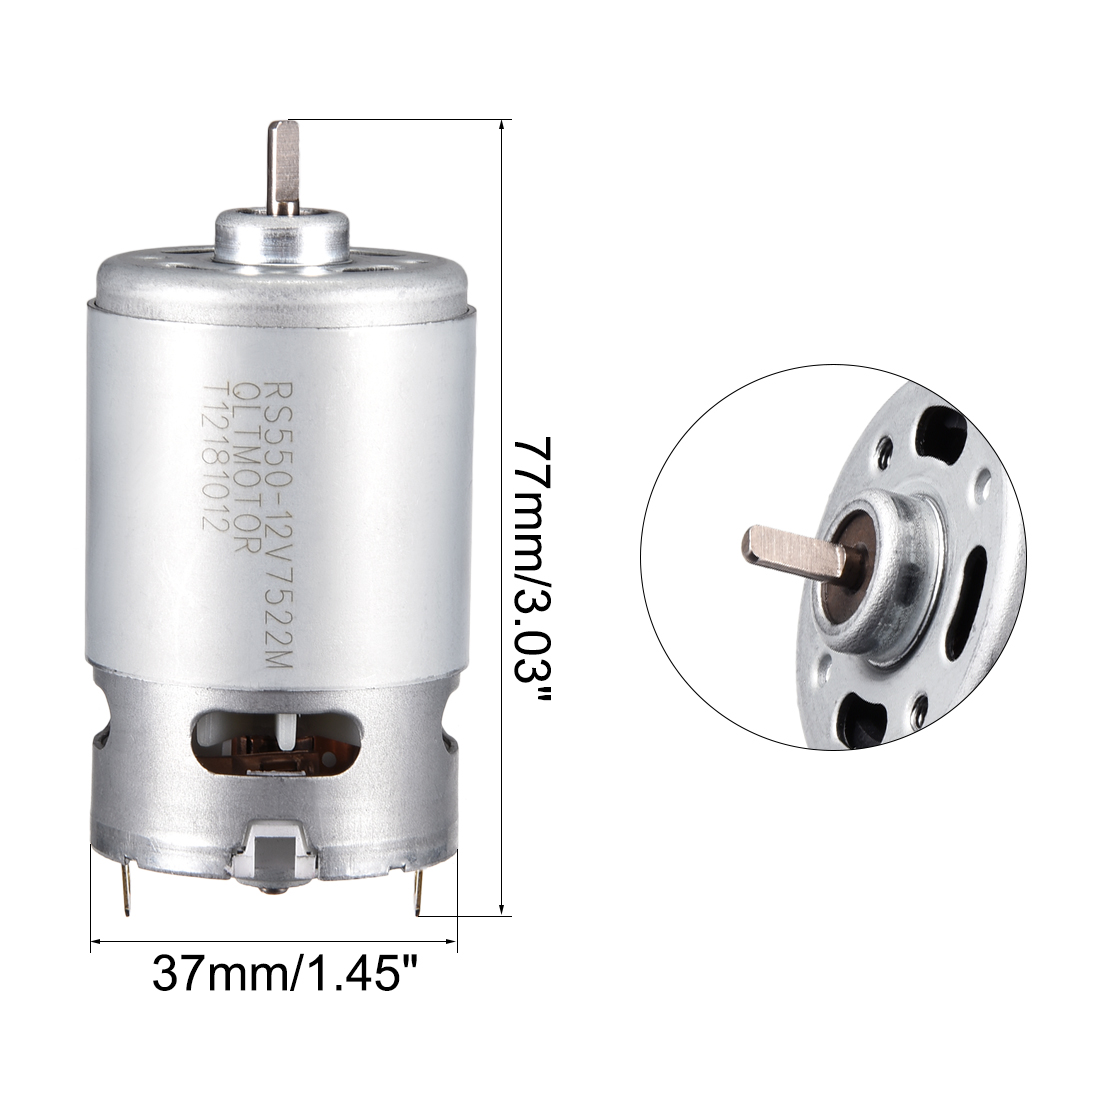 Robots,Power Tool Replacement Engine uxcell 12V 21000RPM DC Motor for DIY Electronic Drills